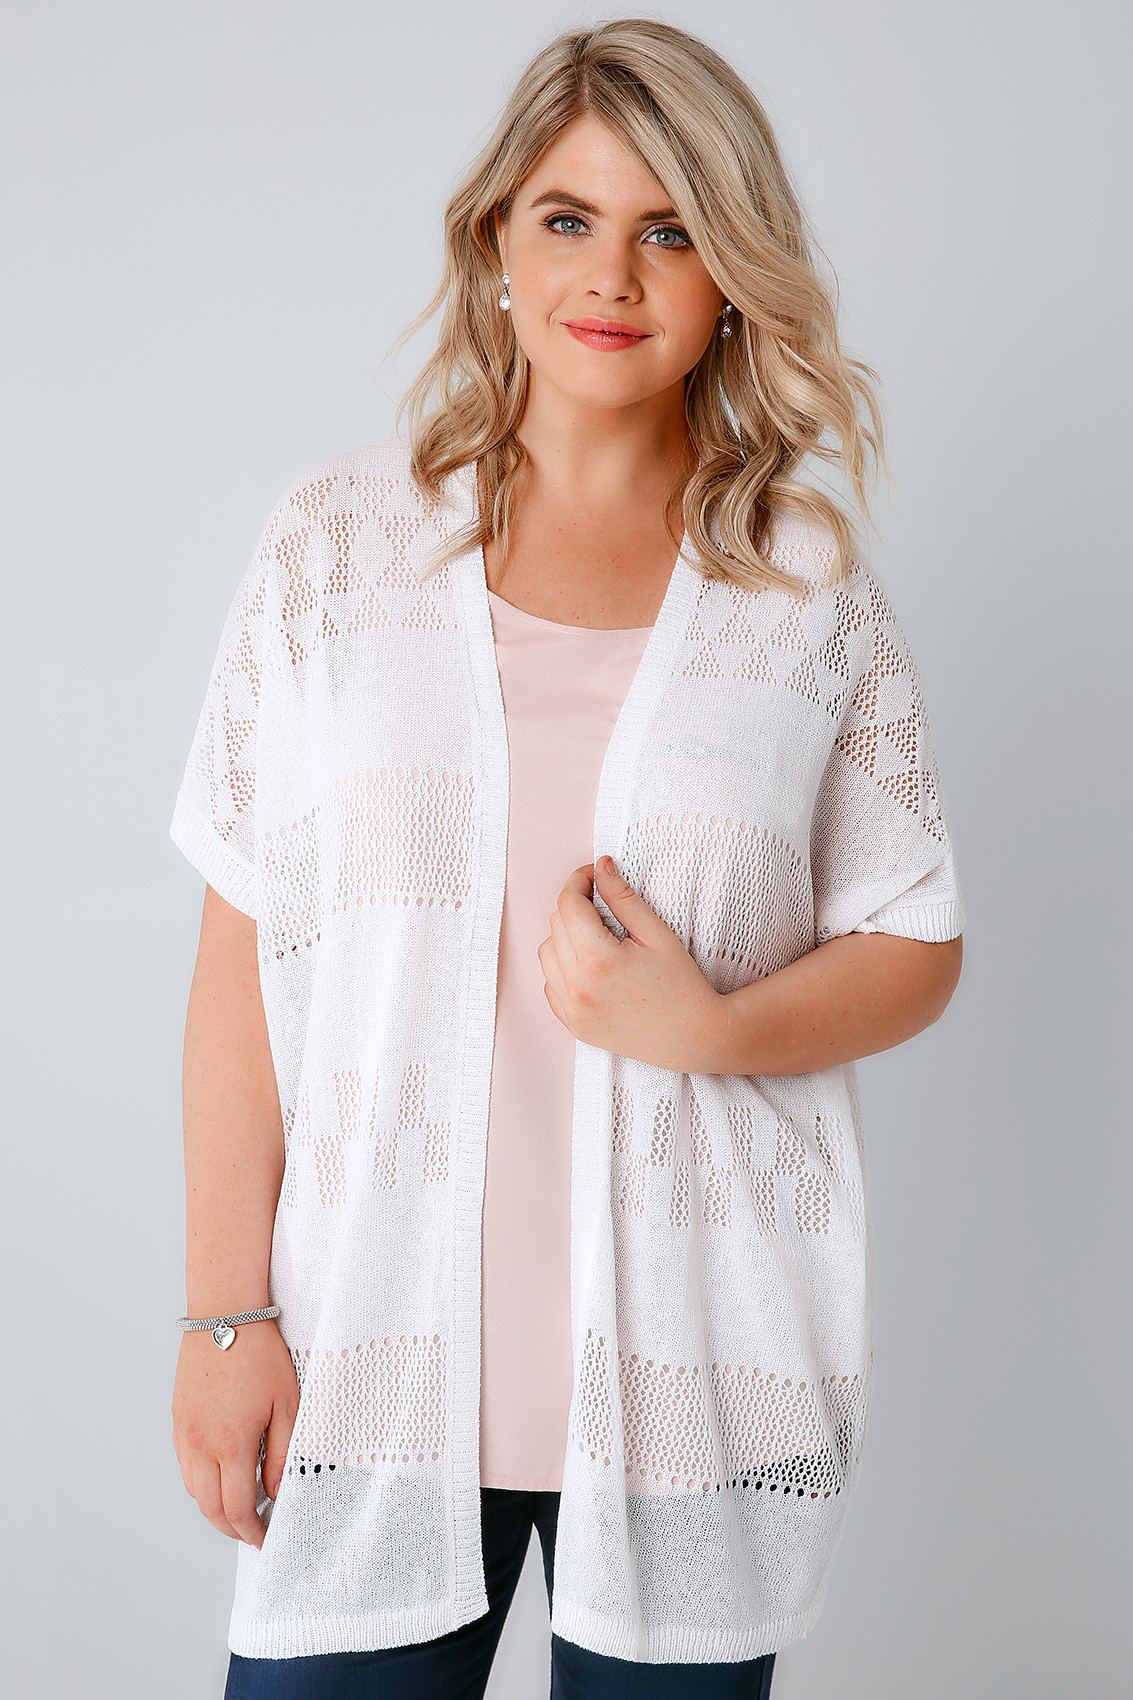 Awesome White Crochet Knit Cardigan with Short Sleeves Plus Size White Crochet Cardigan Of Lovely 47 Ideas White Crochet Cardigan